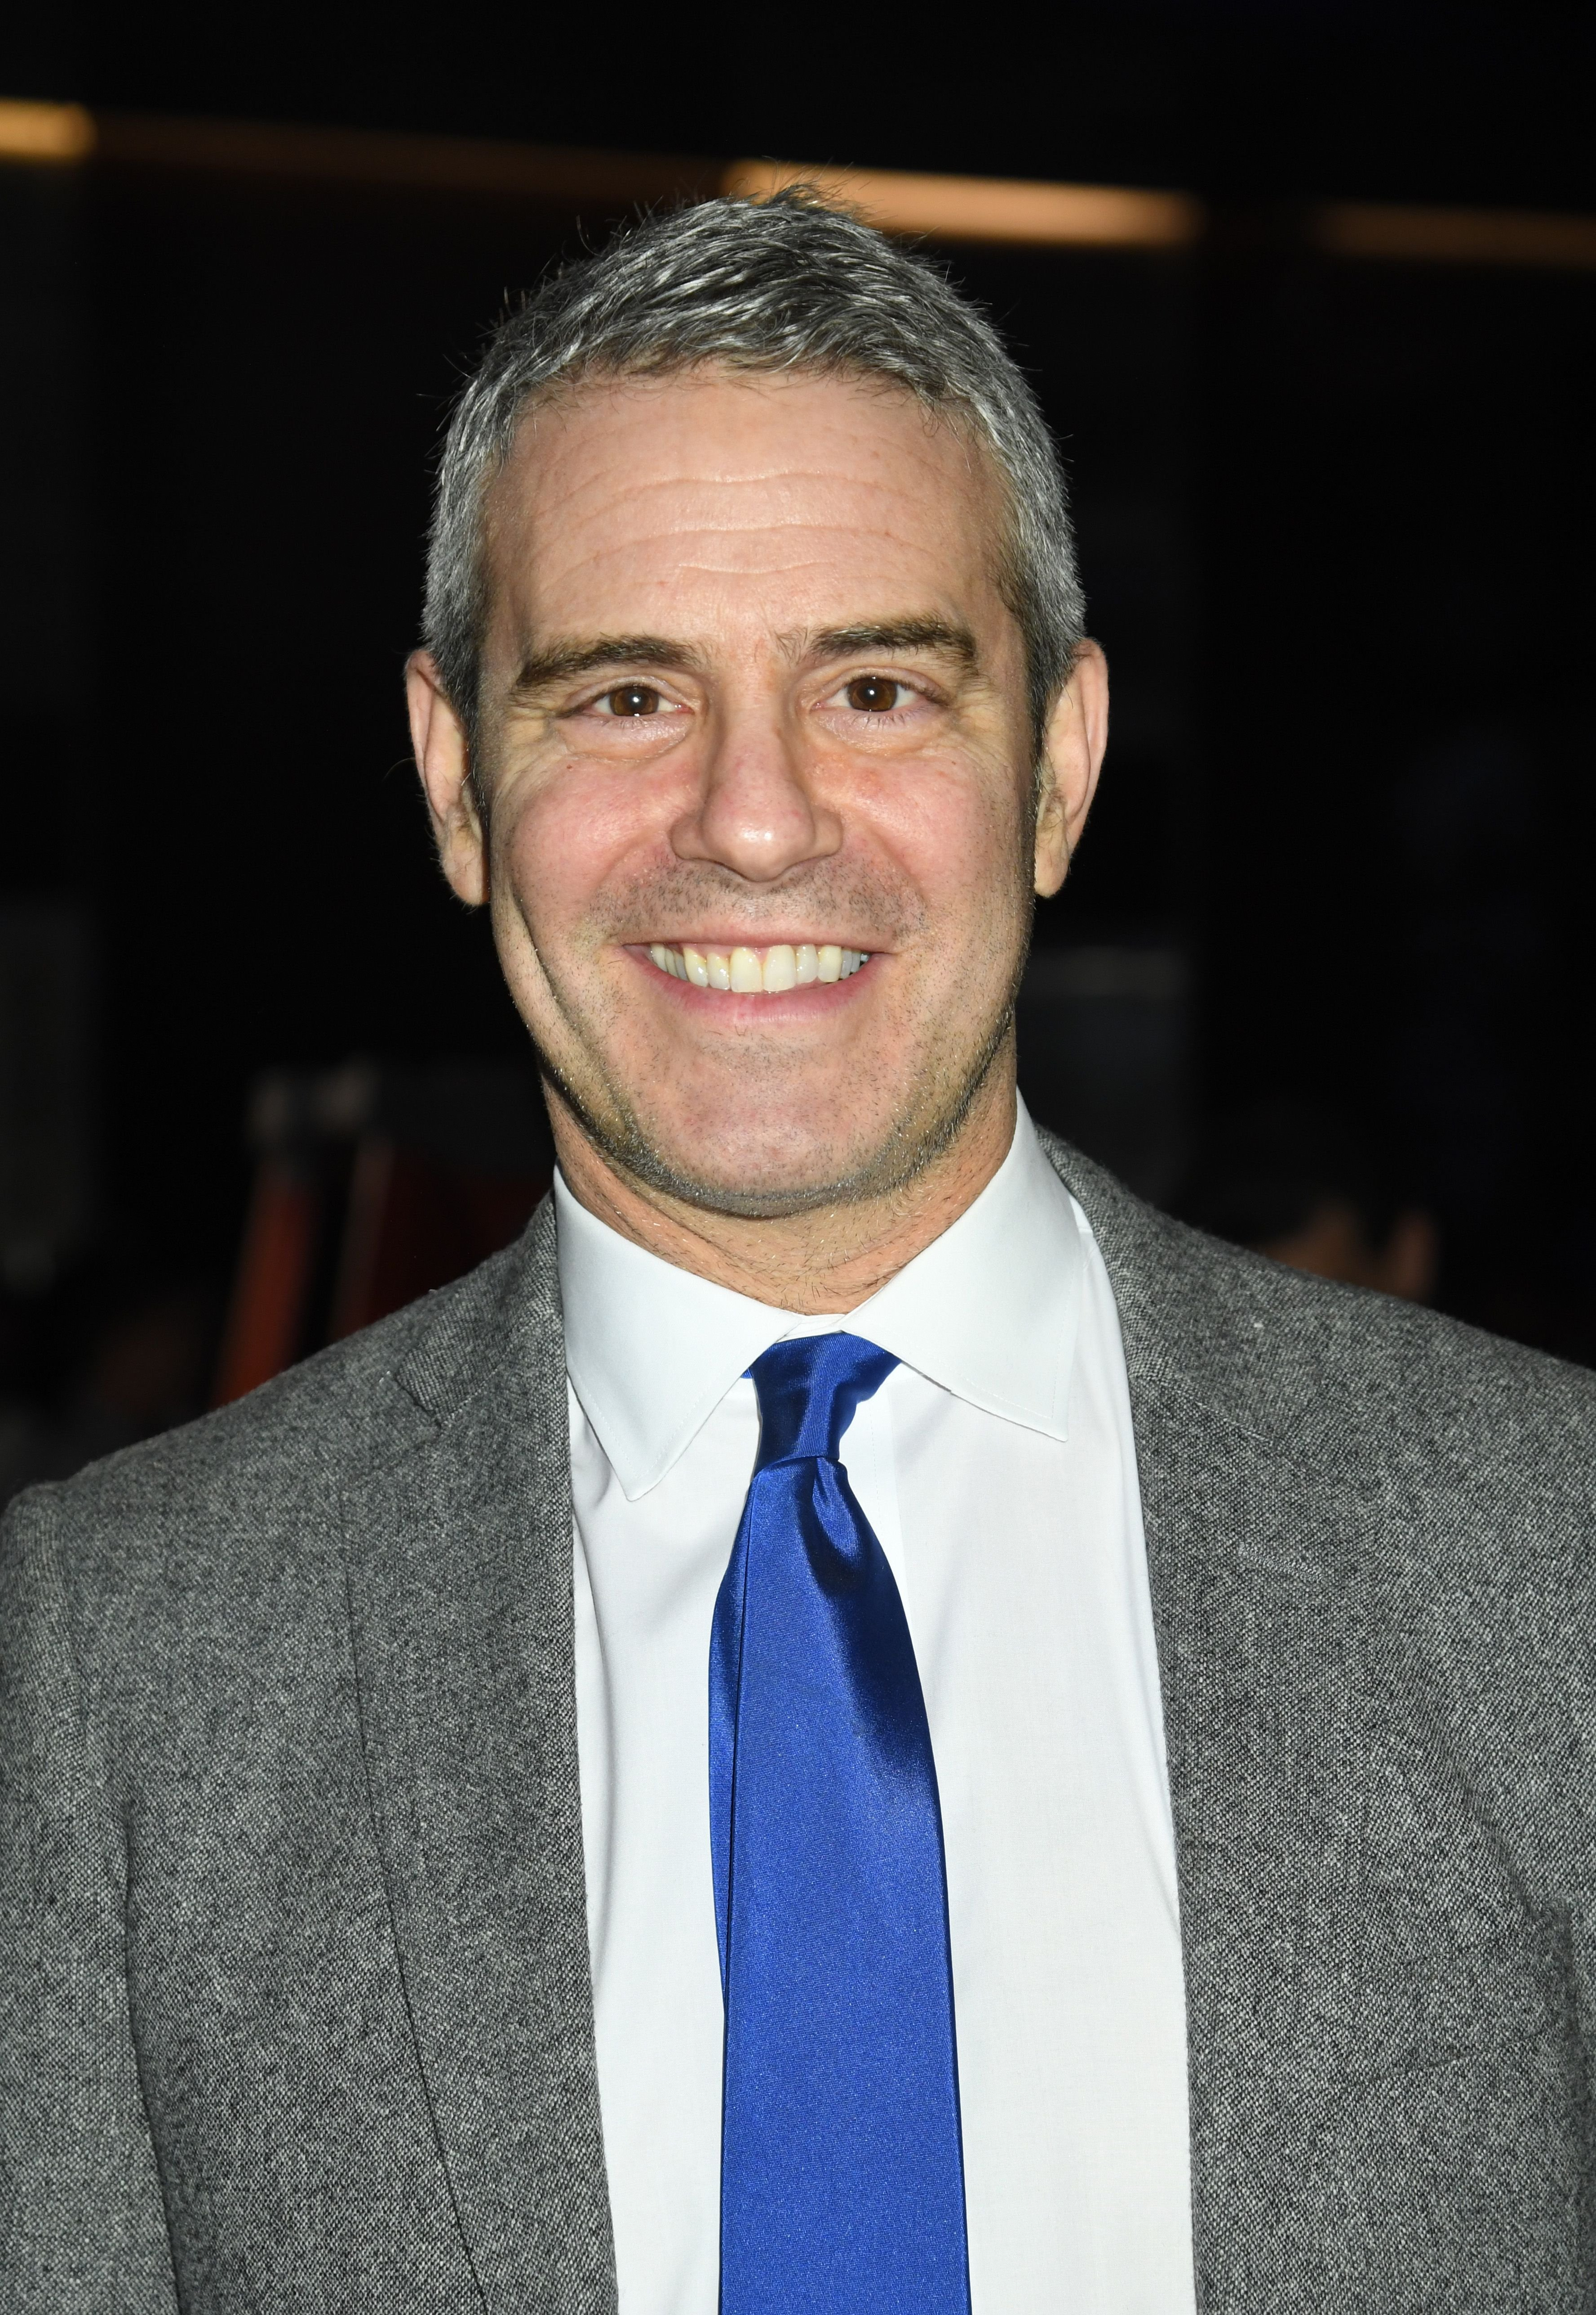 Andy Cohen at the Watches Of Switzerland Hudson Yards opening on March 14, 2019 at Hudson Yards in New York City | Photo: Getty Images